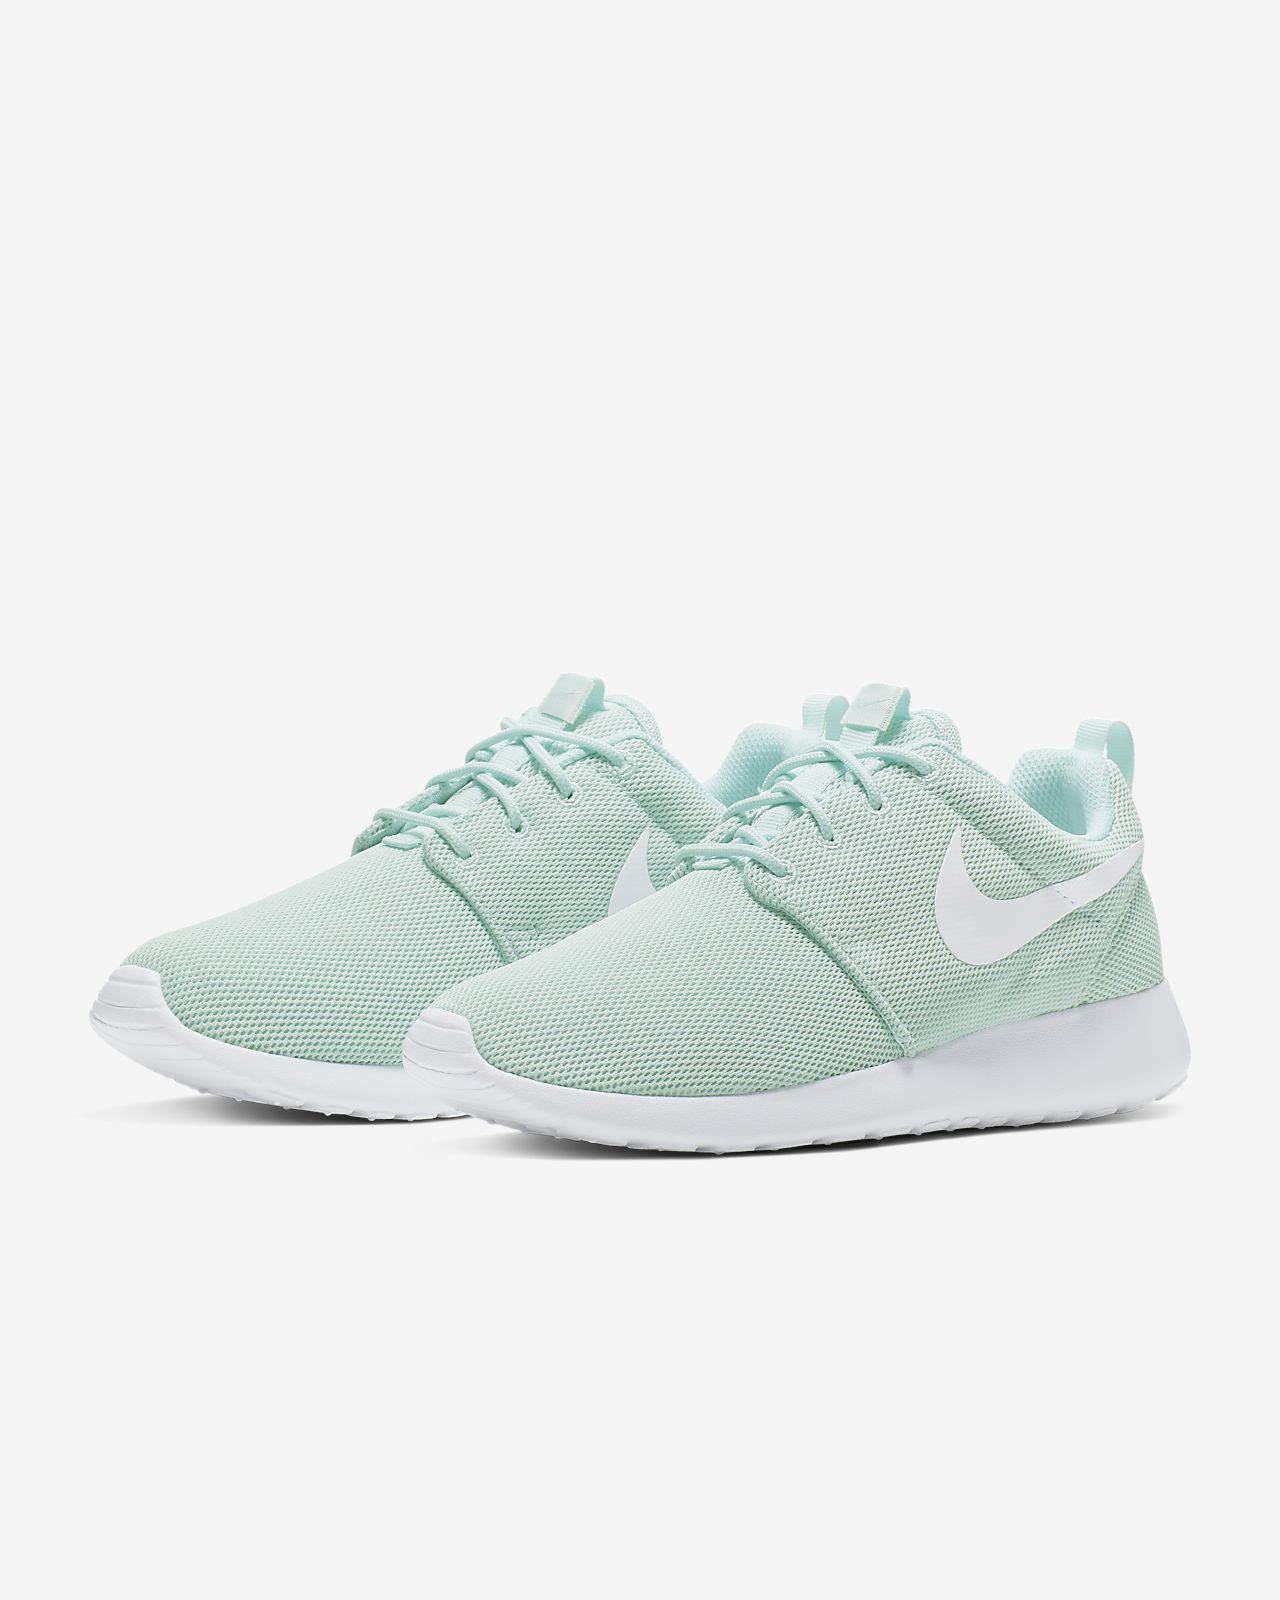 premium selection a364a 33982 ... Nike Roshe One Women s Shoe